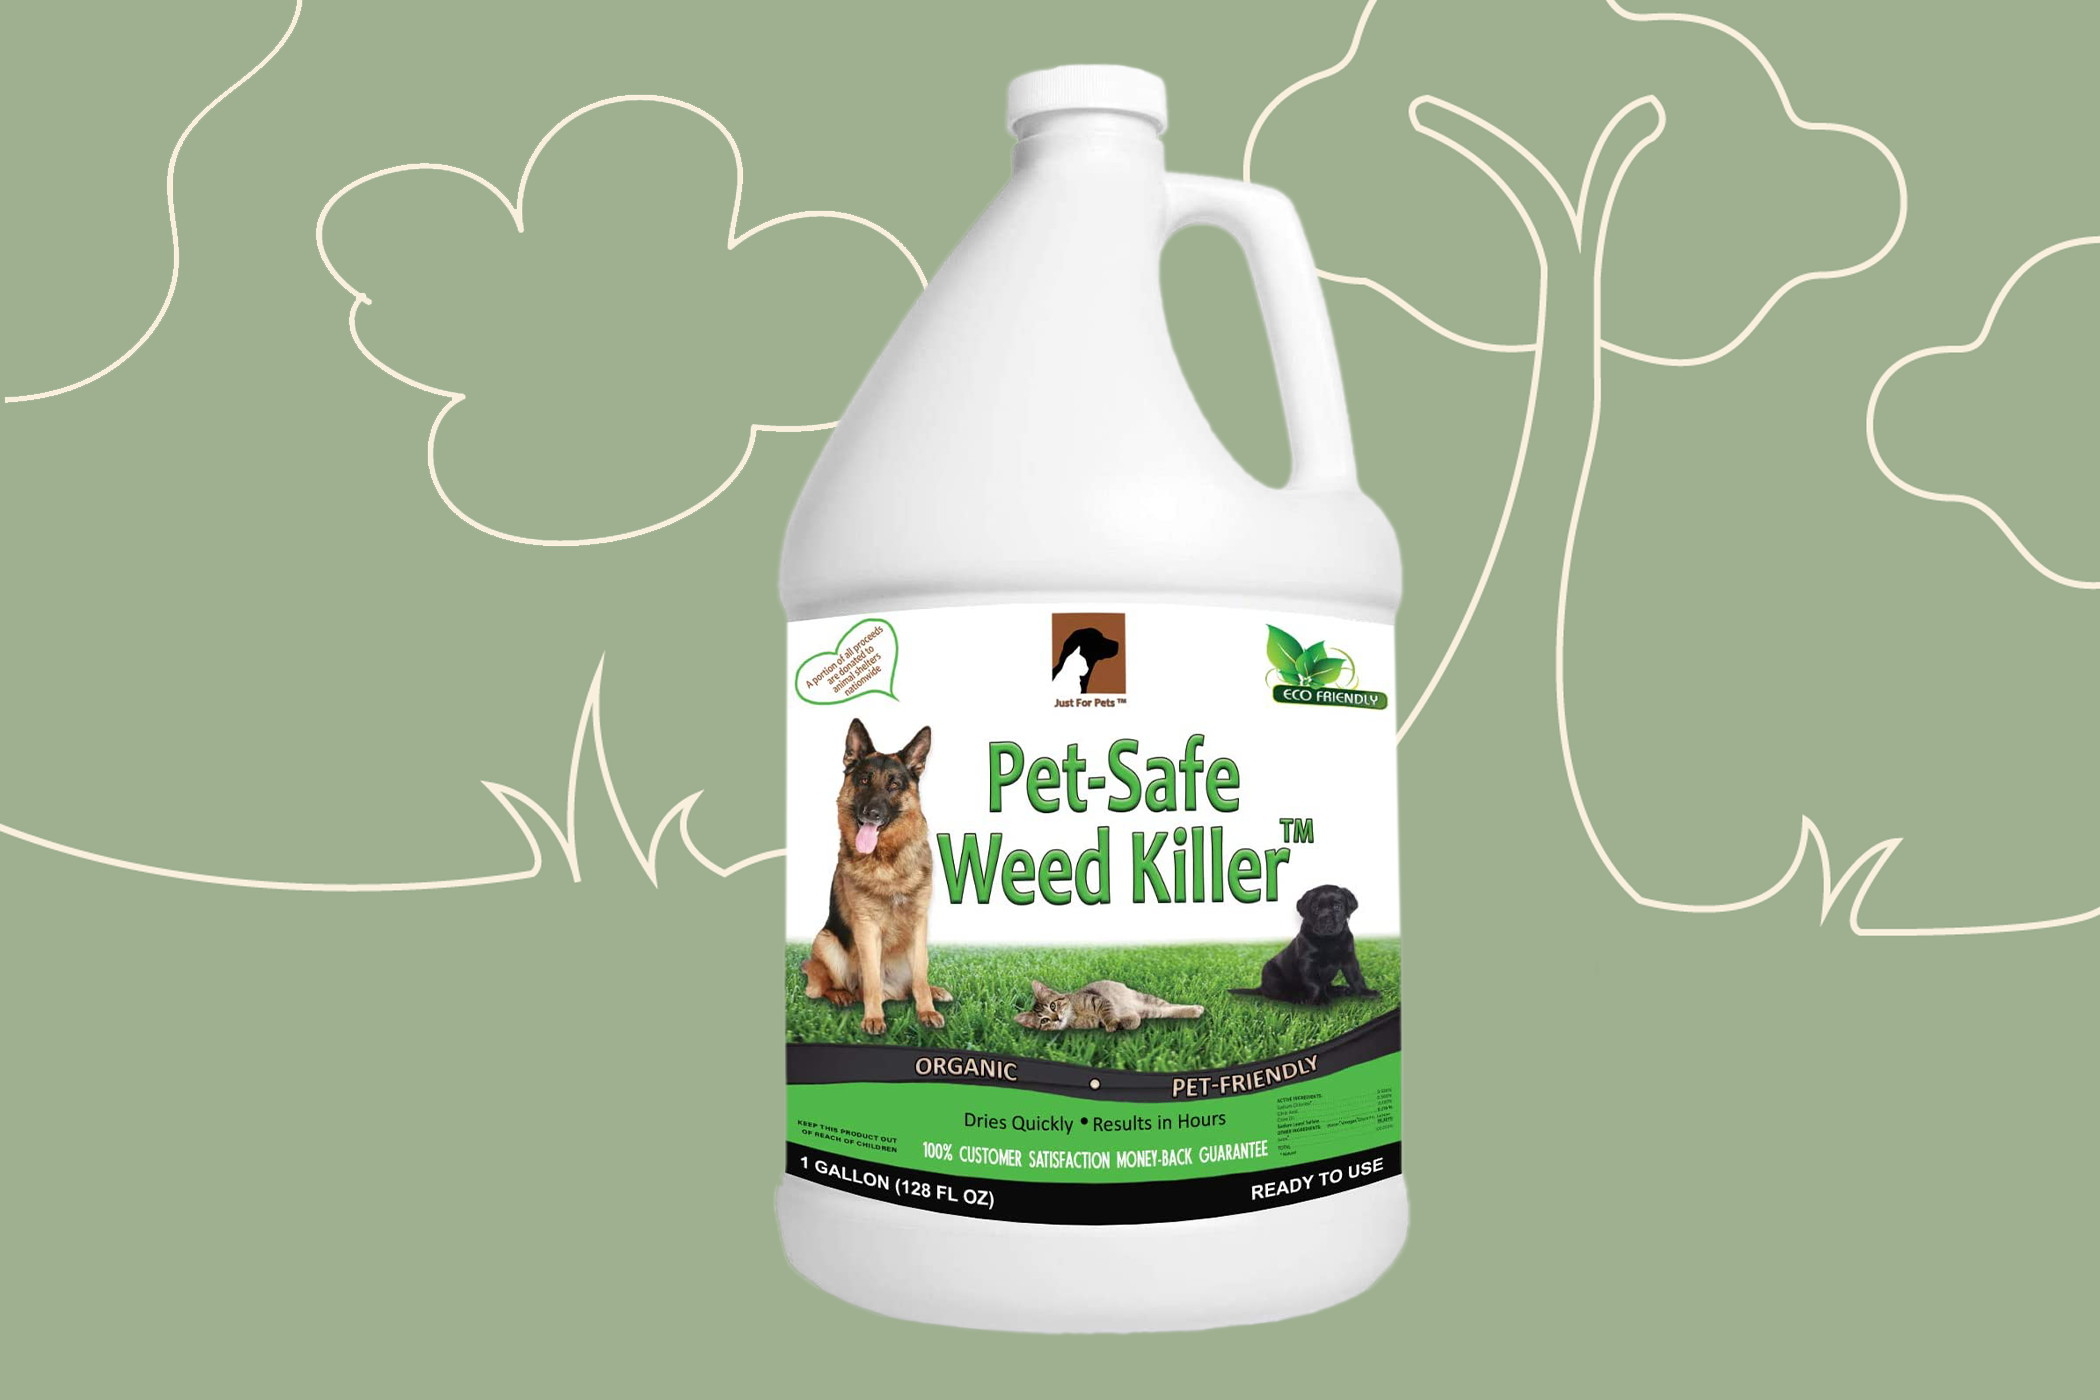 pet-safe weed killer